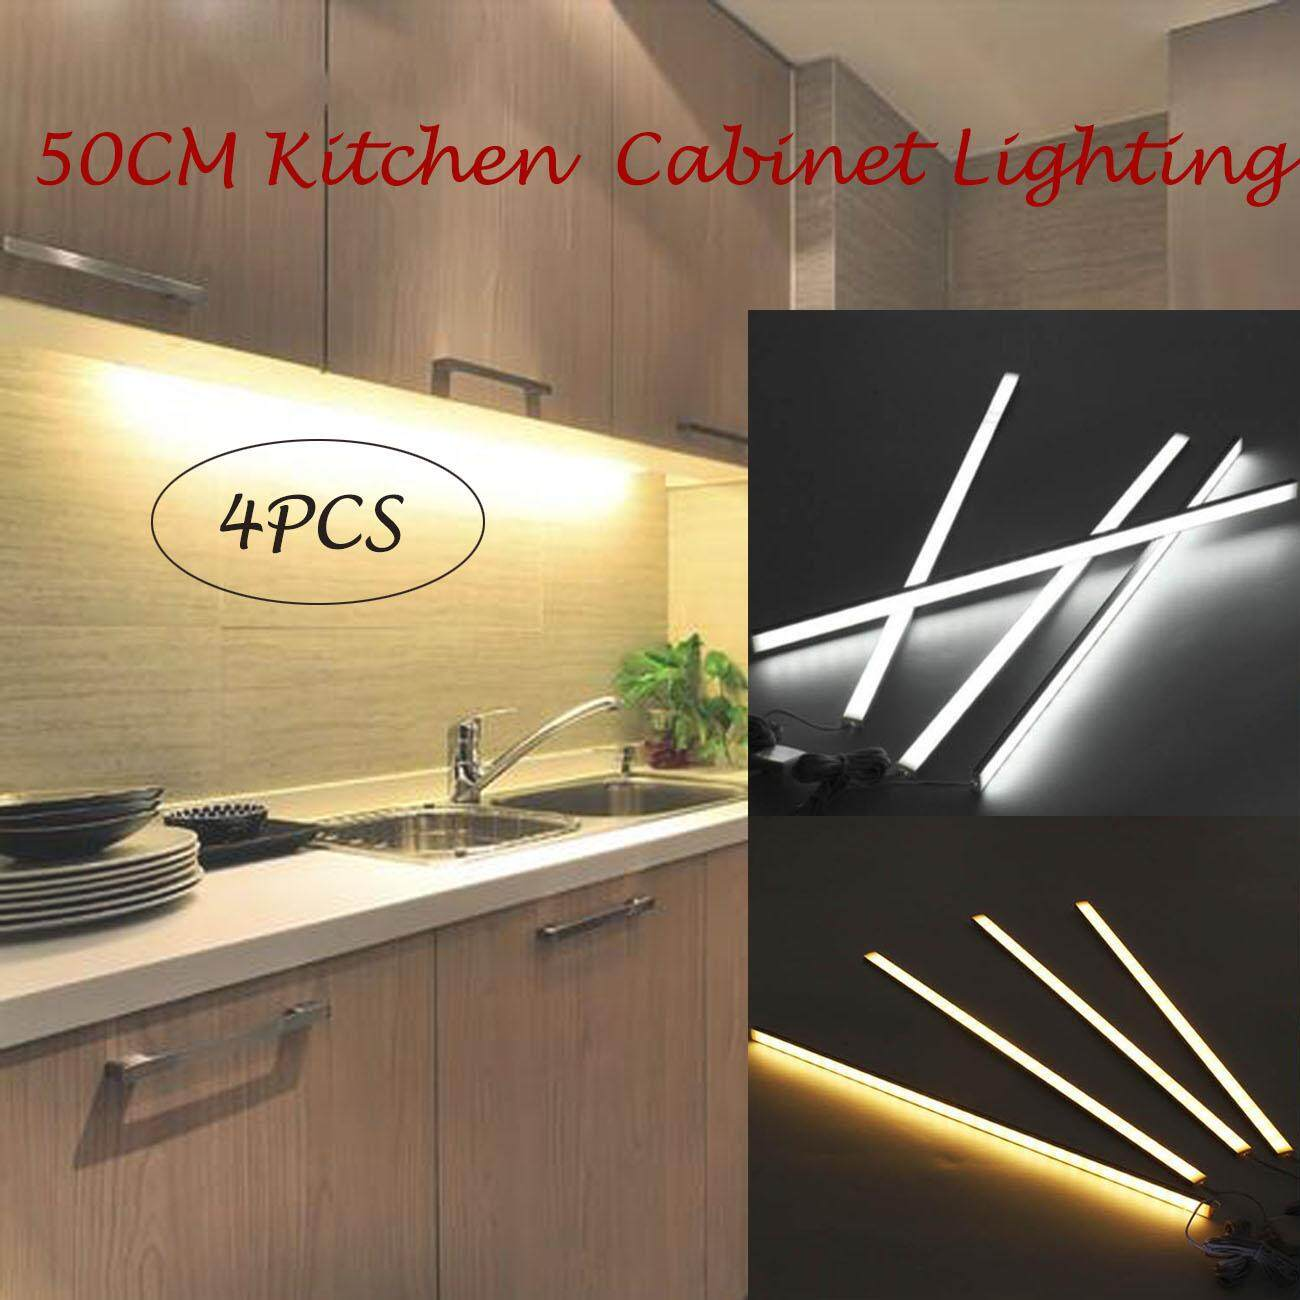 4pcs 50cm Kitchen Under Cabinet Counter